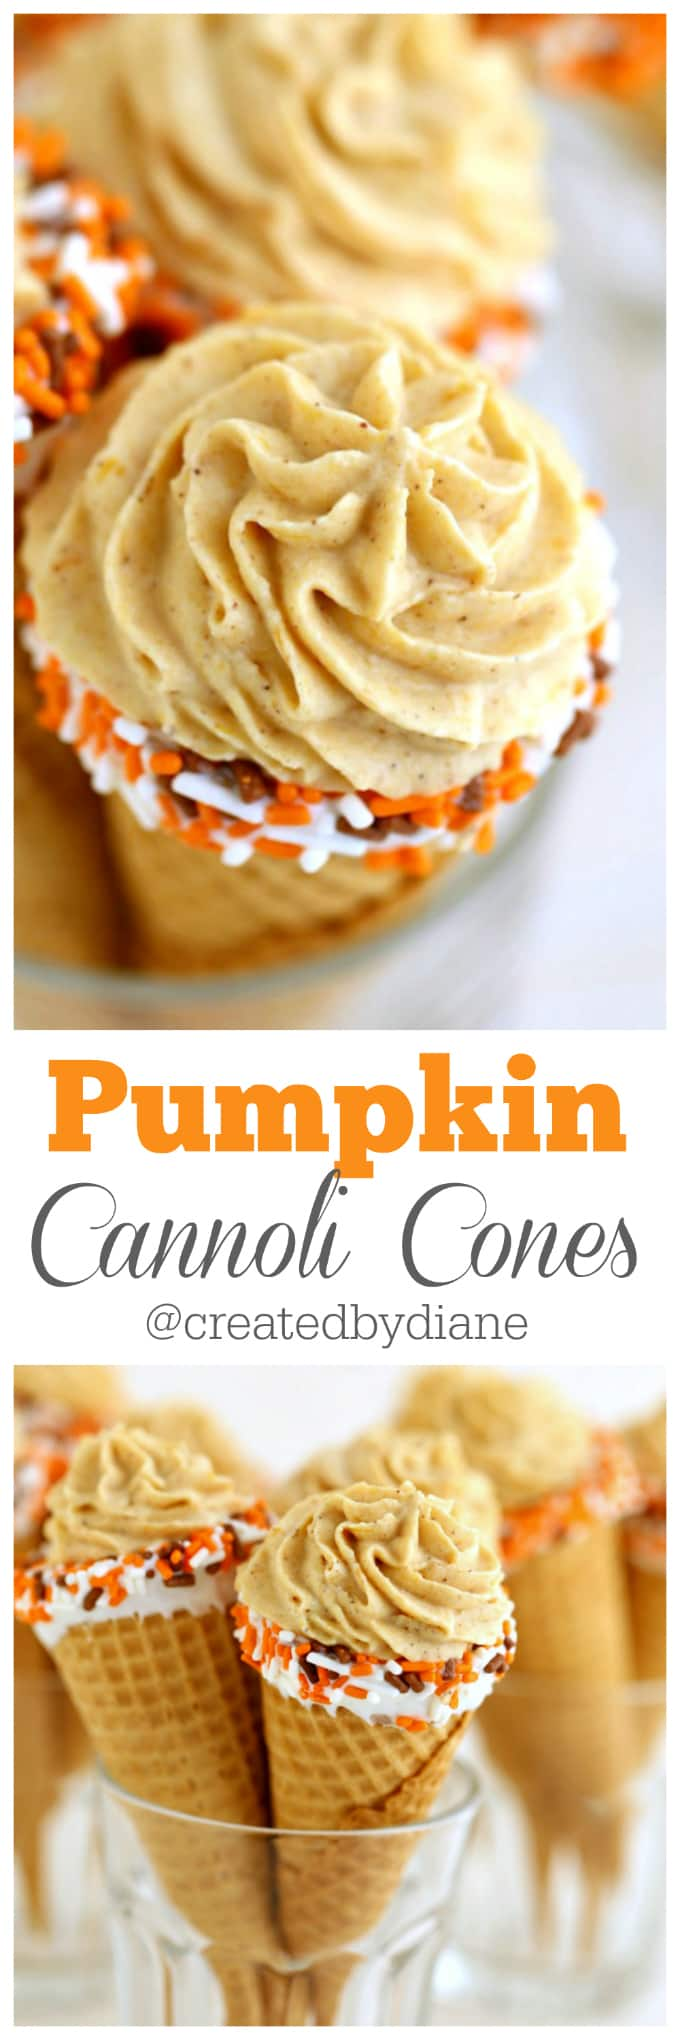 pumpkin cannoli cones recipe from @createdbydiane